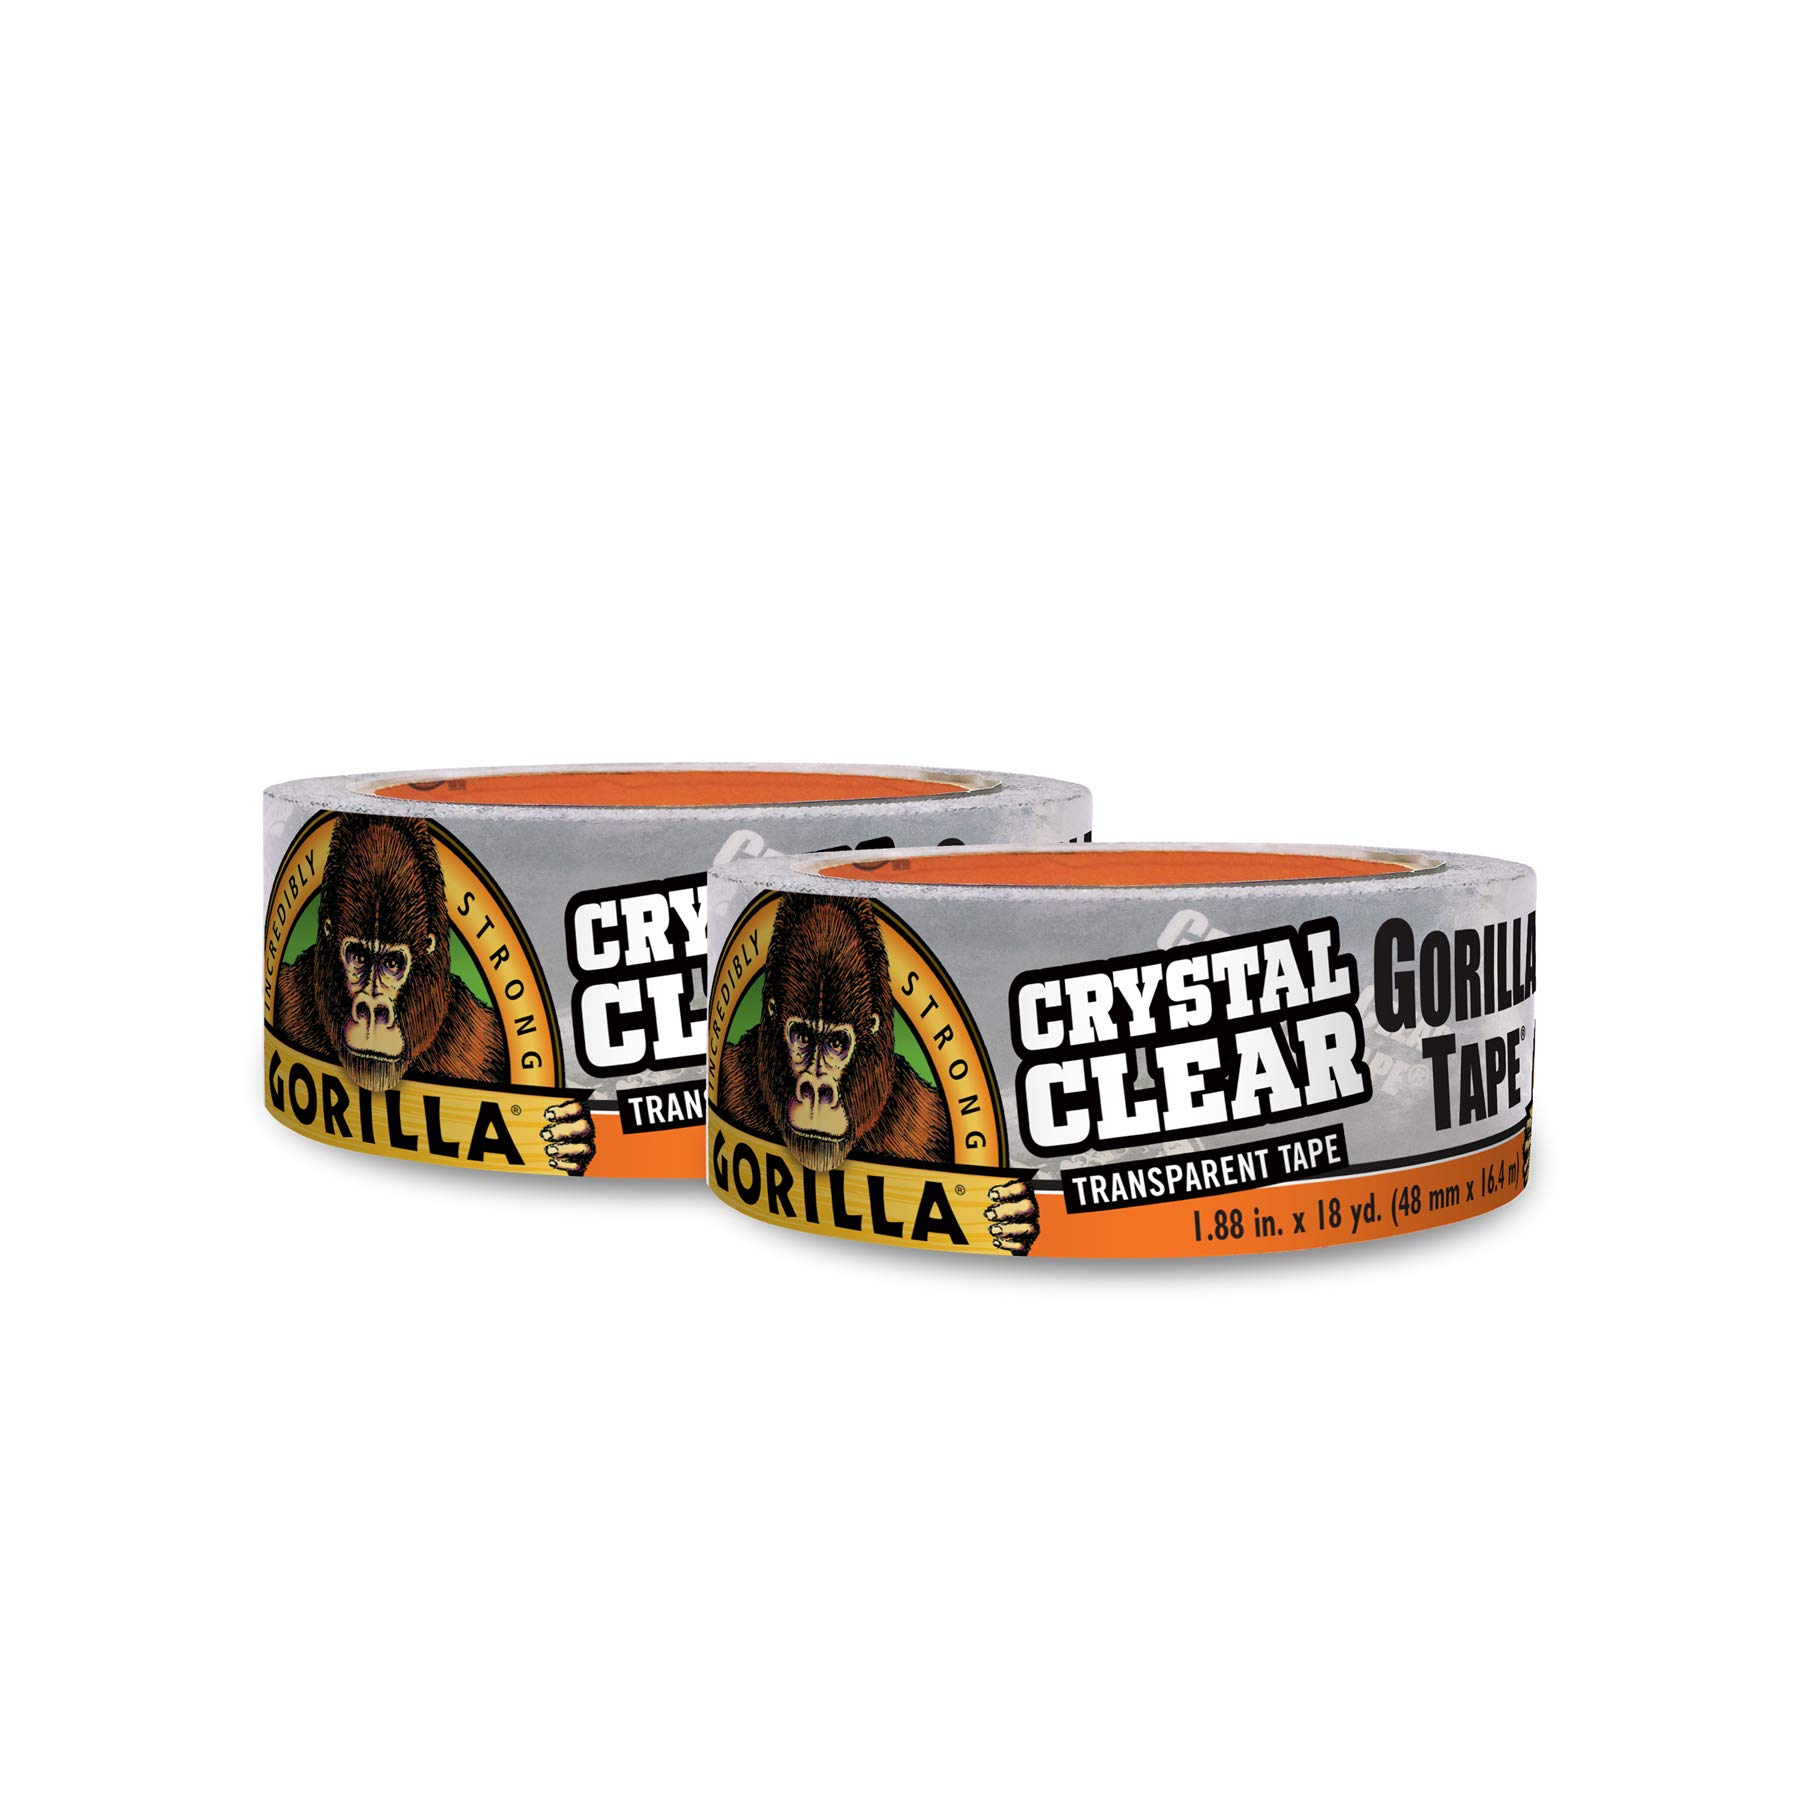 Gorilla Crystal Clear Duct Tape, 1.88'' x 18 yd, Clear, (Pack of 2) by Gorilla